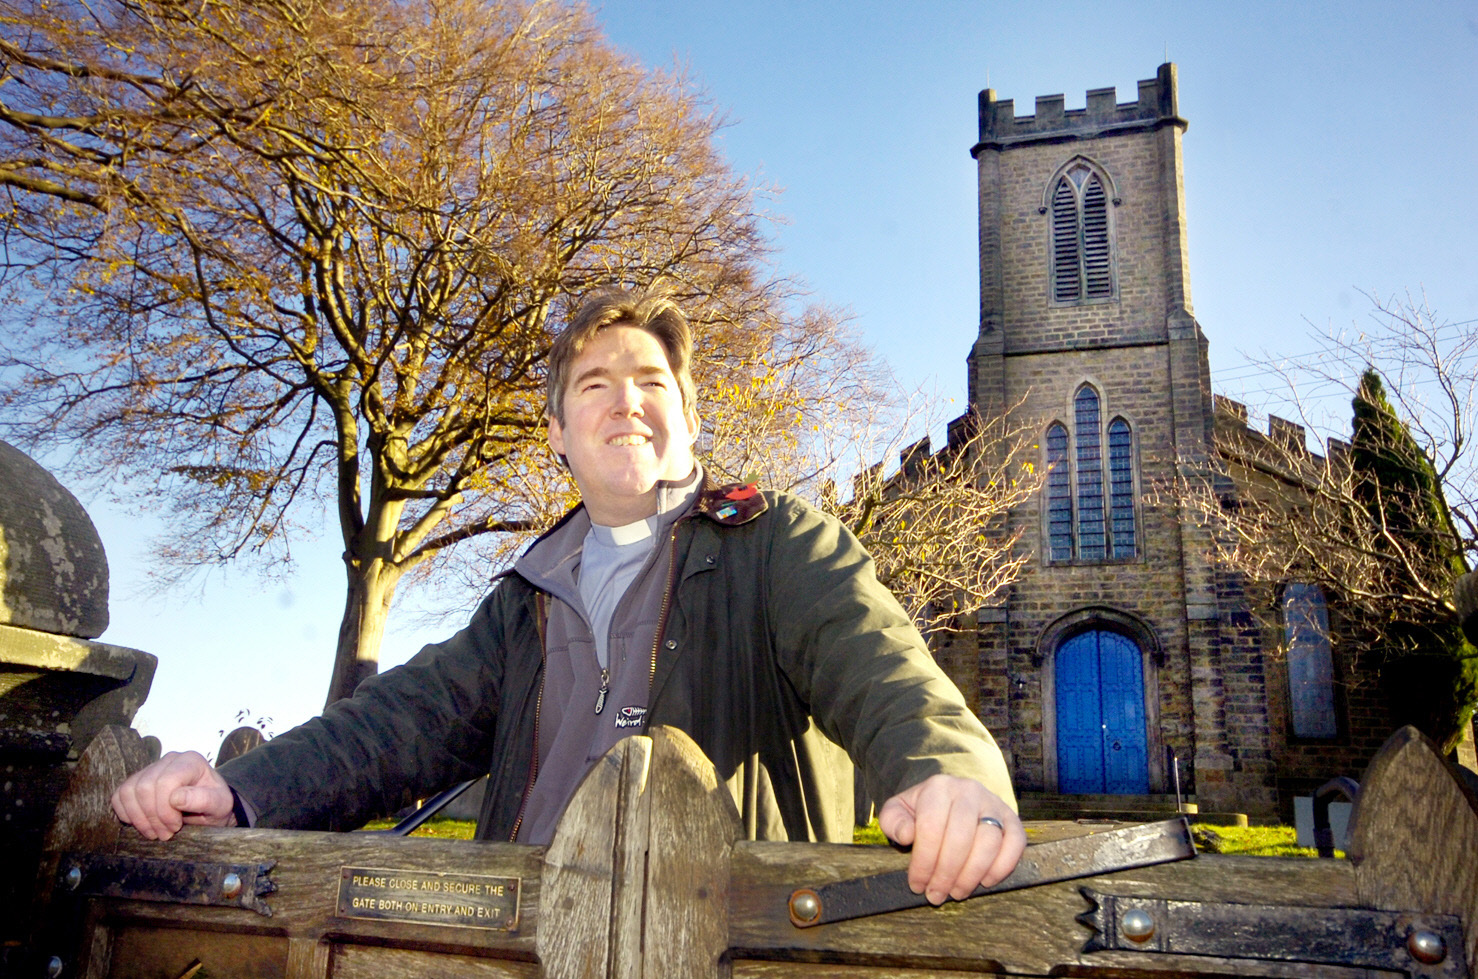 Former vicar of St Margaret's Church the Rev Clive Burgess stands outside the church in 2011 when the closure was first closed